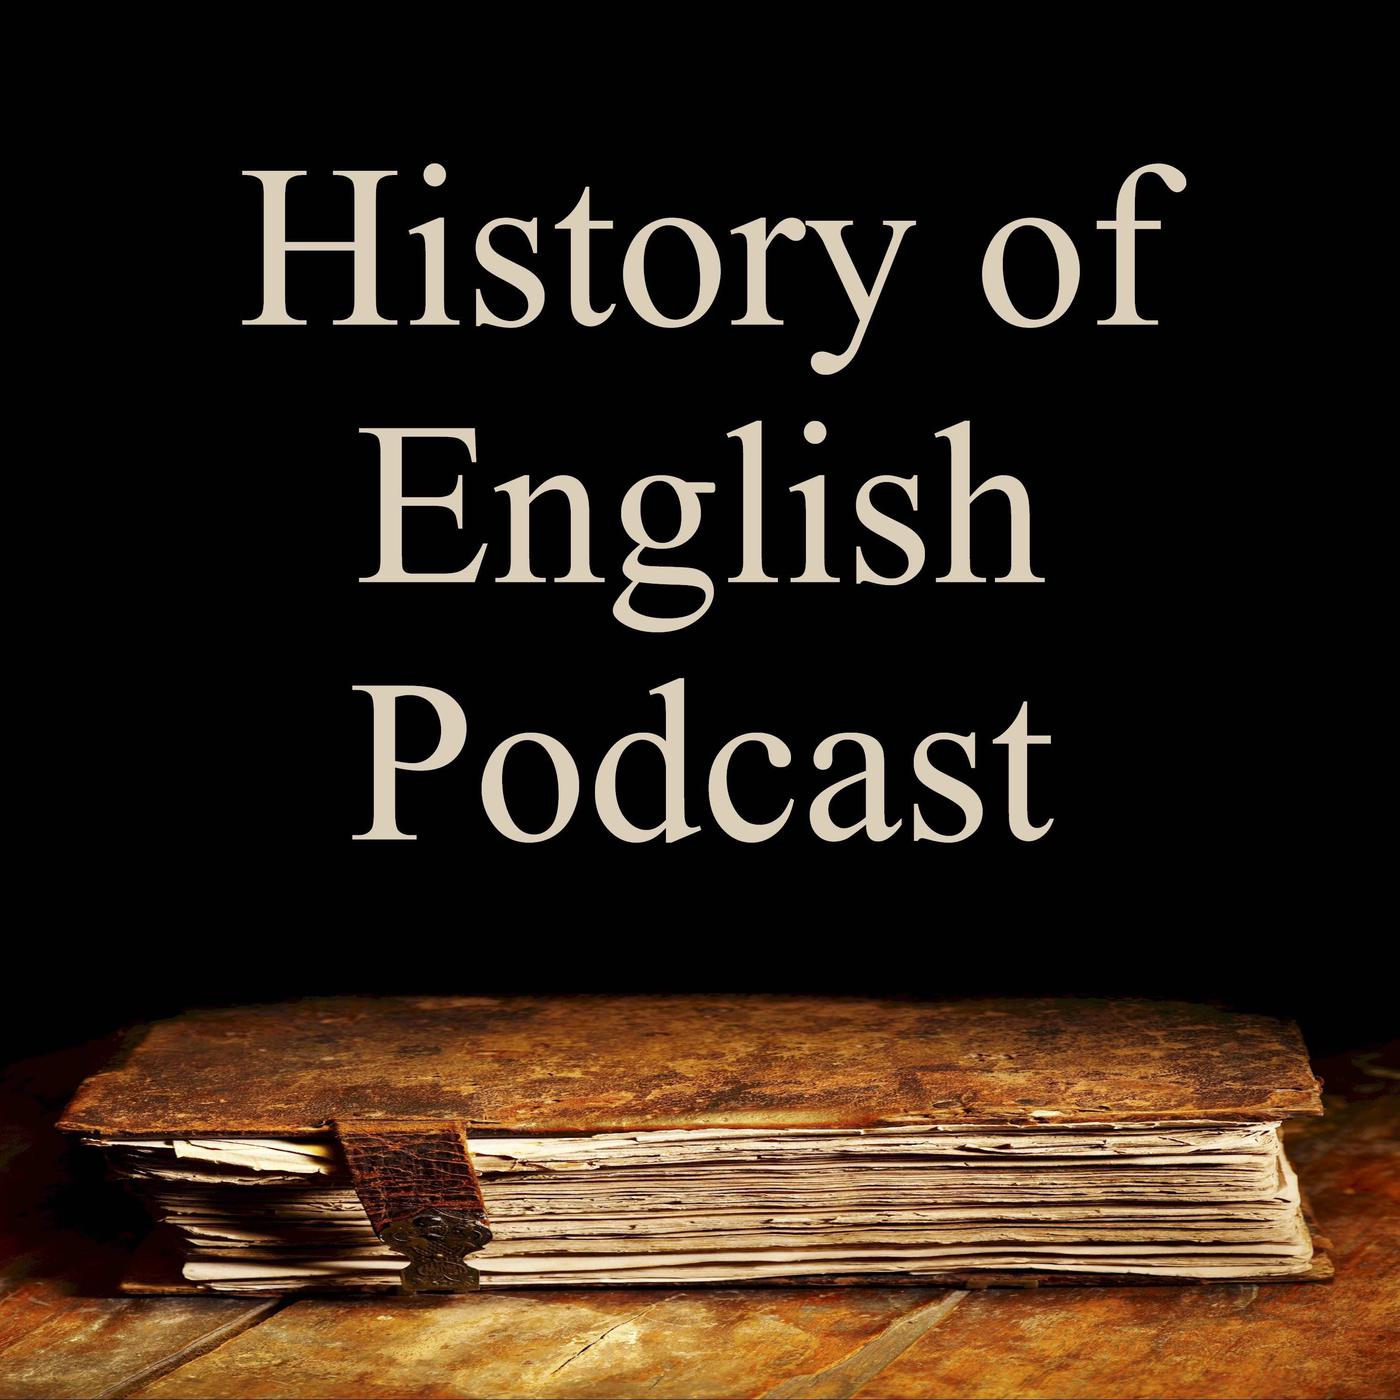 The History of English Podcast